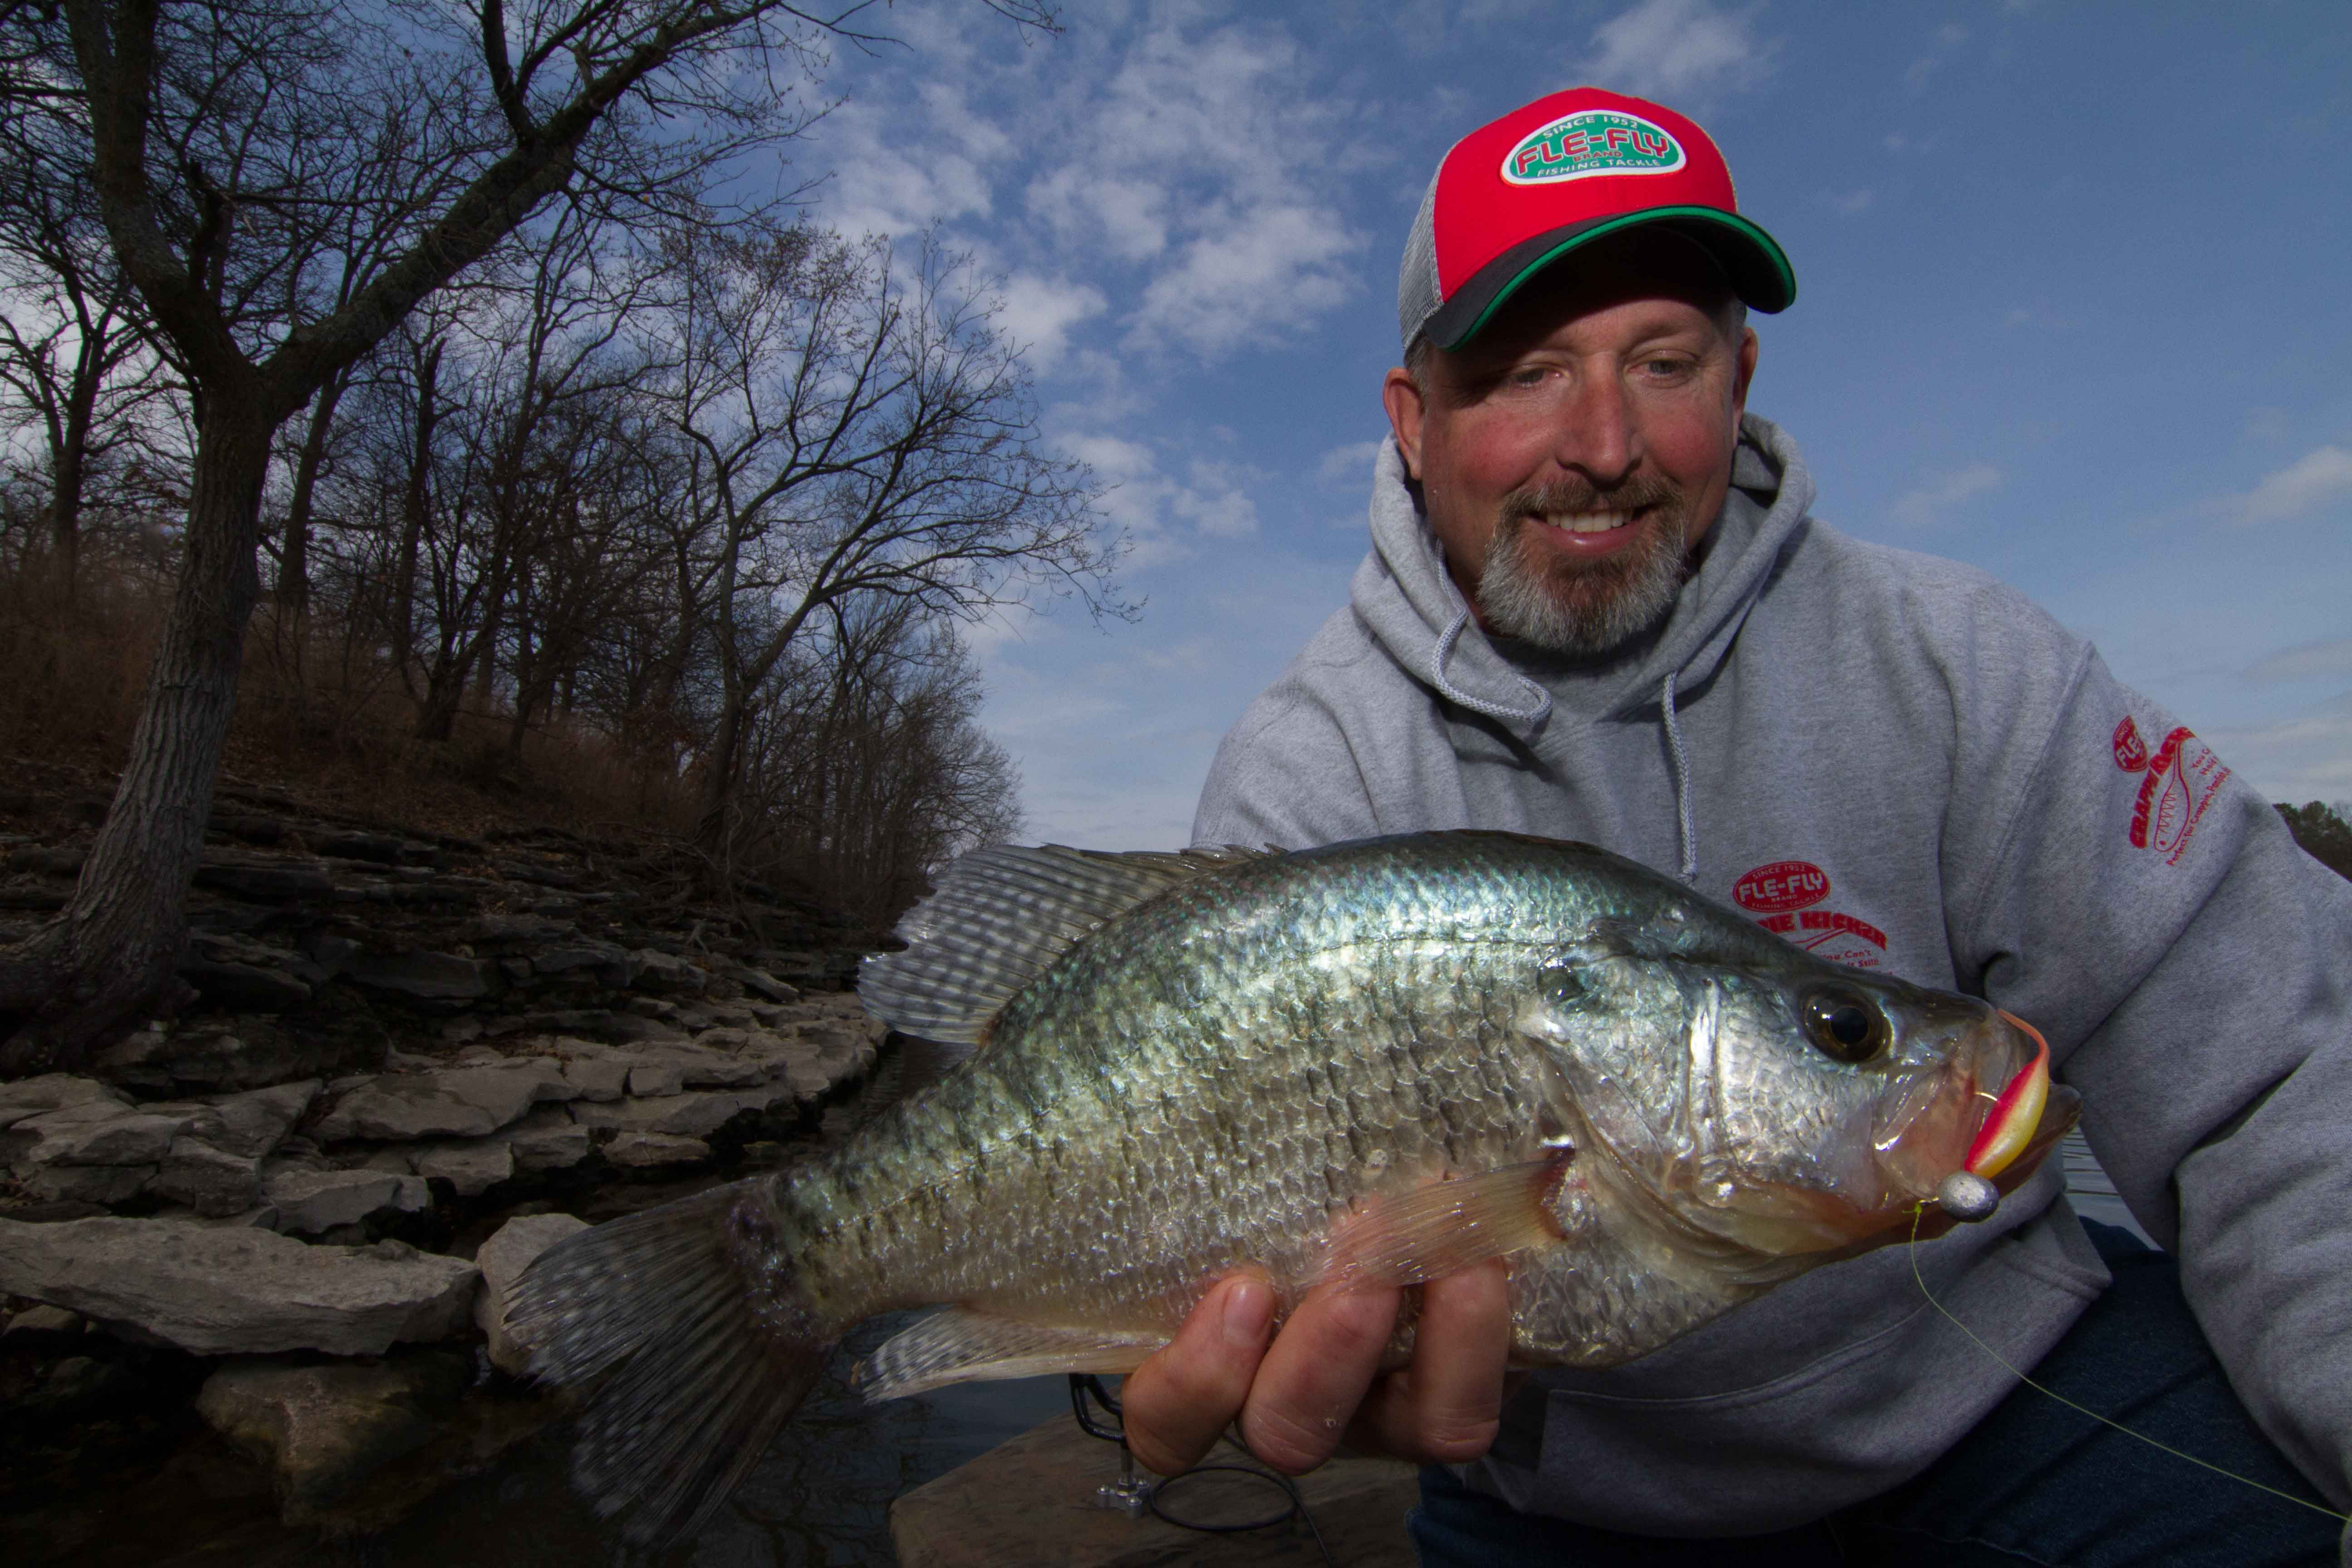 Jeff Williams with crappie caught on Crappie Kicker